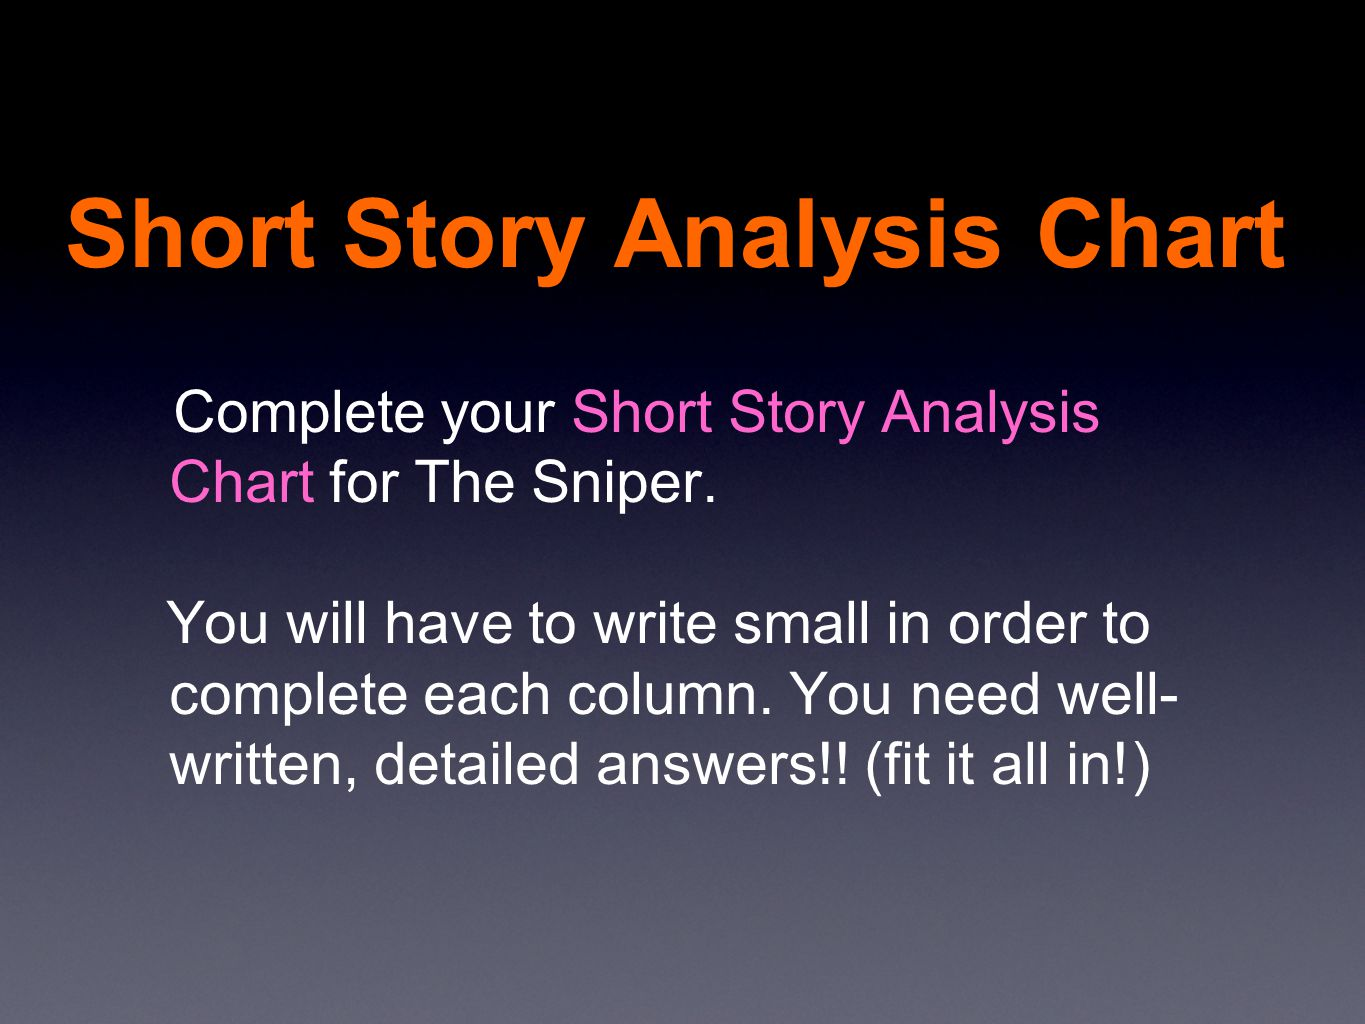 An Essay On English Language  Short Story Analysis Chart How To Write A High School Essay also Compare And Contrast Essay On High School And College A Short Story The Sniper By Liam Oflaherty  Ppt Video Online  A Thesis For An Essay Should